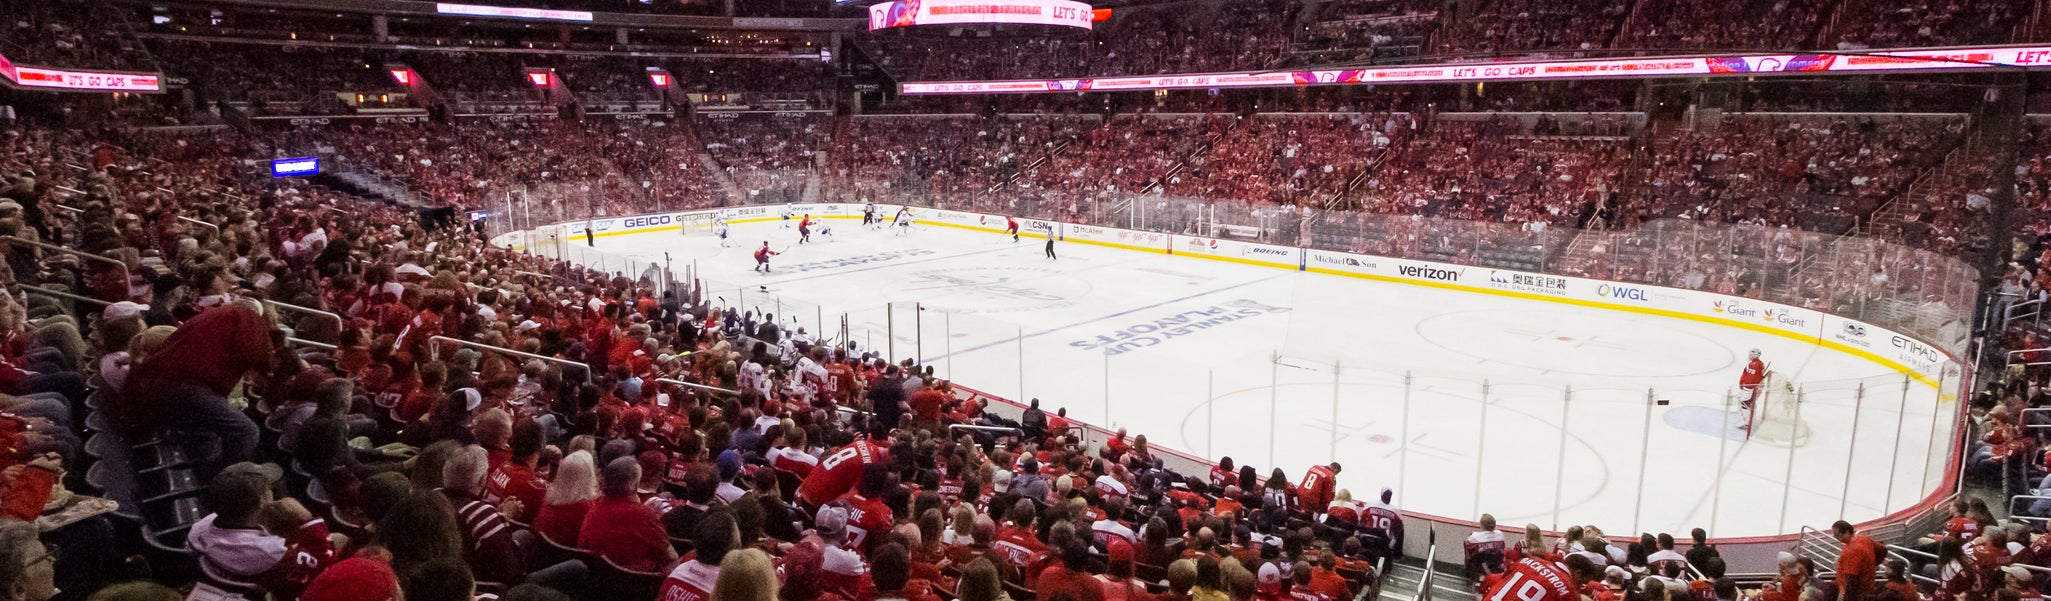 Seat view from LL Preferred 103 at Capital One Arena